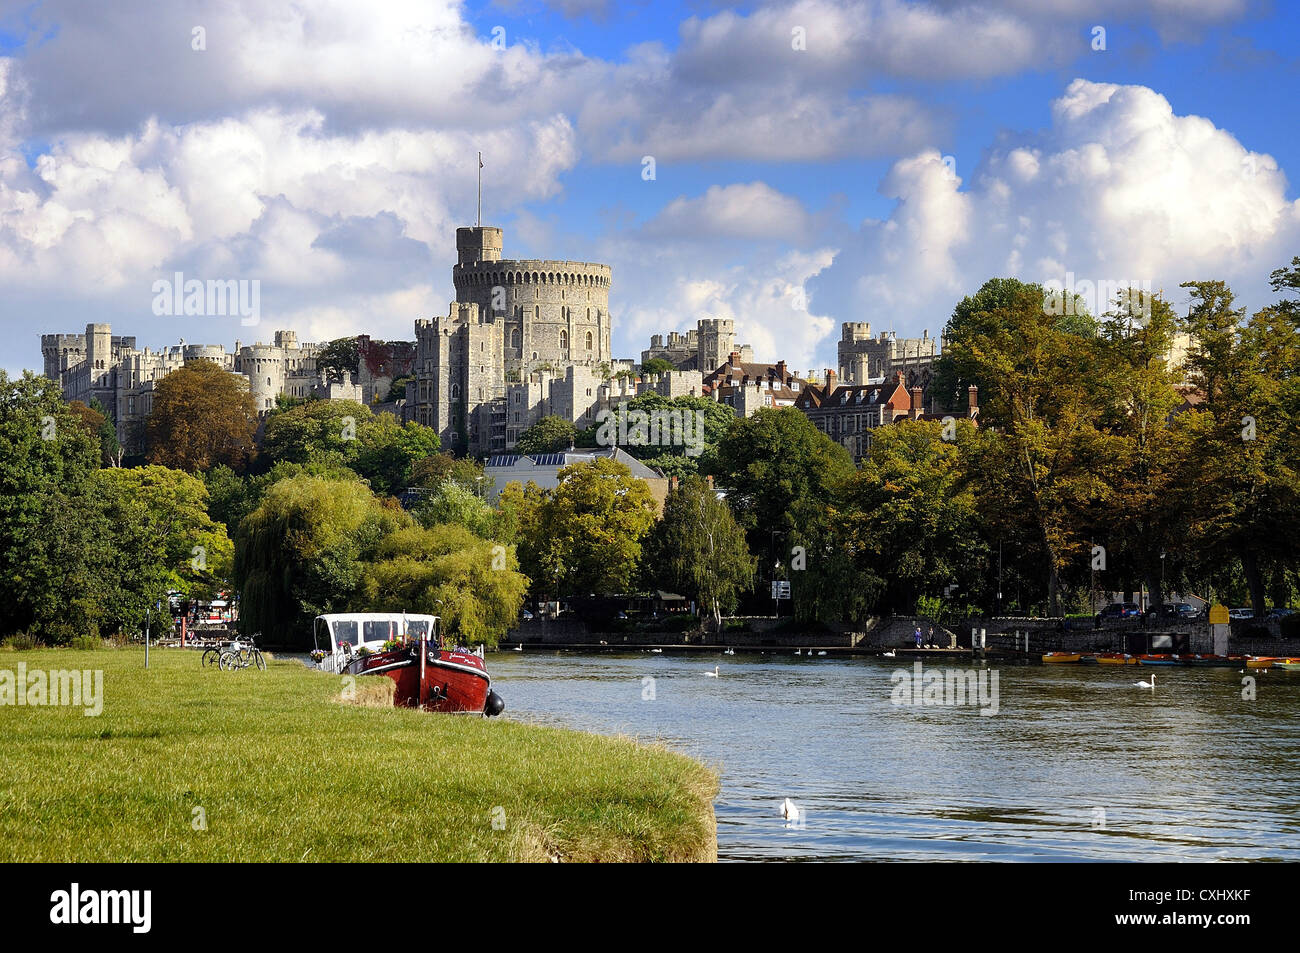 Exterior of Windsor Castle with the River Thames in the foreground Berkshire Great Britain England UK - Stock Image